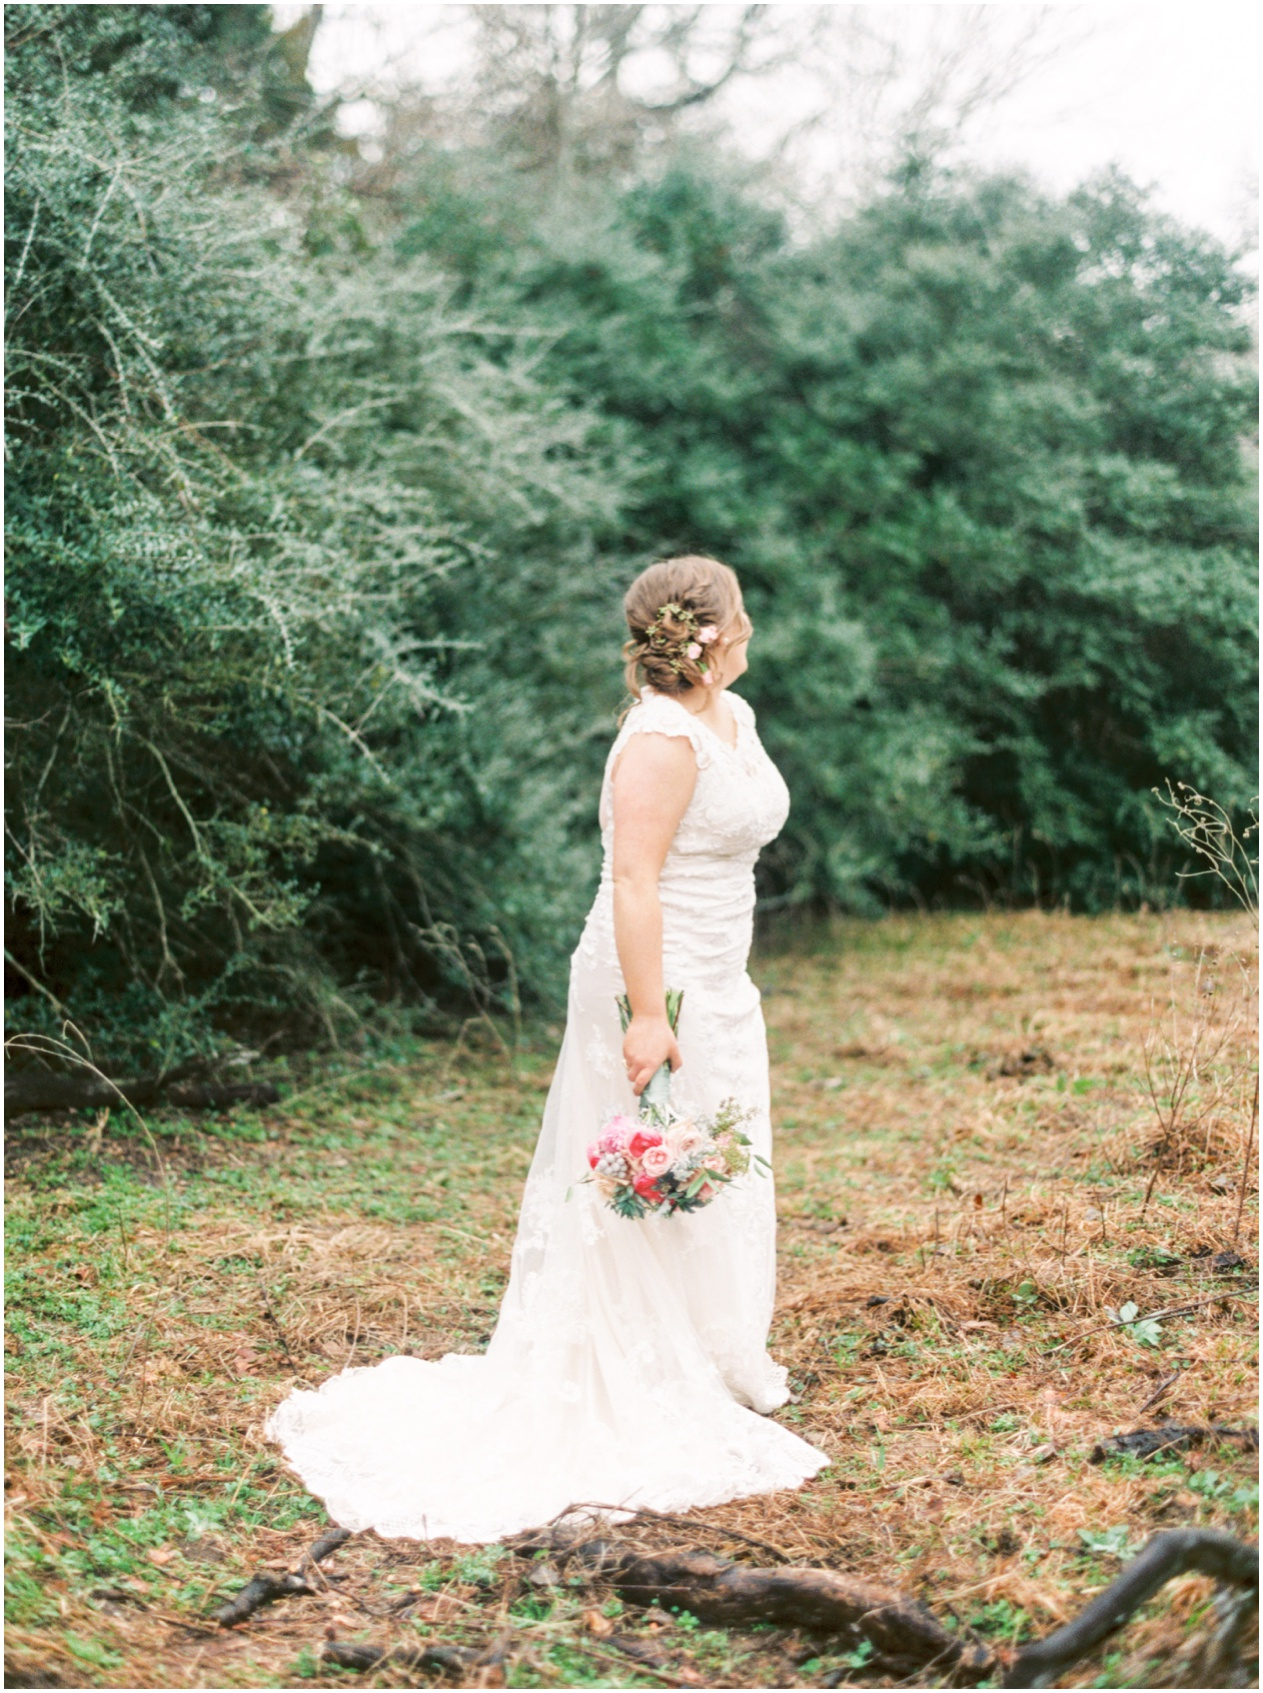 Sarah Best Photography - Claire's Bridals - The Amish Barn at Edge-32_STP.jpg